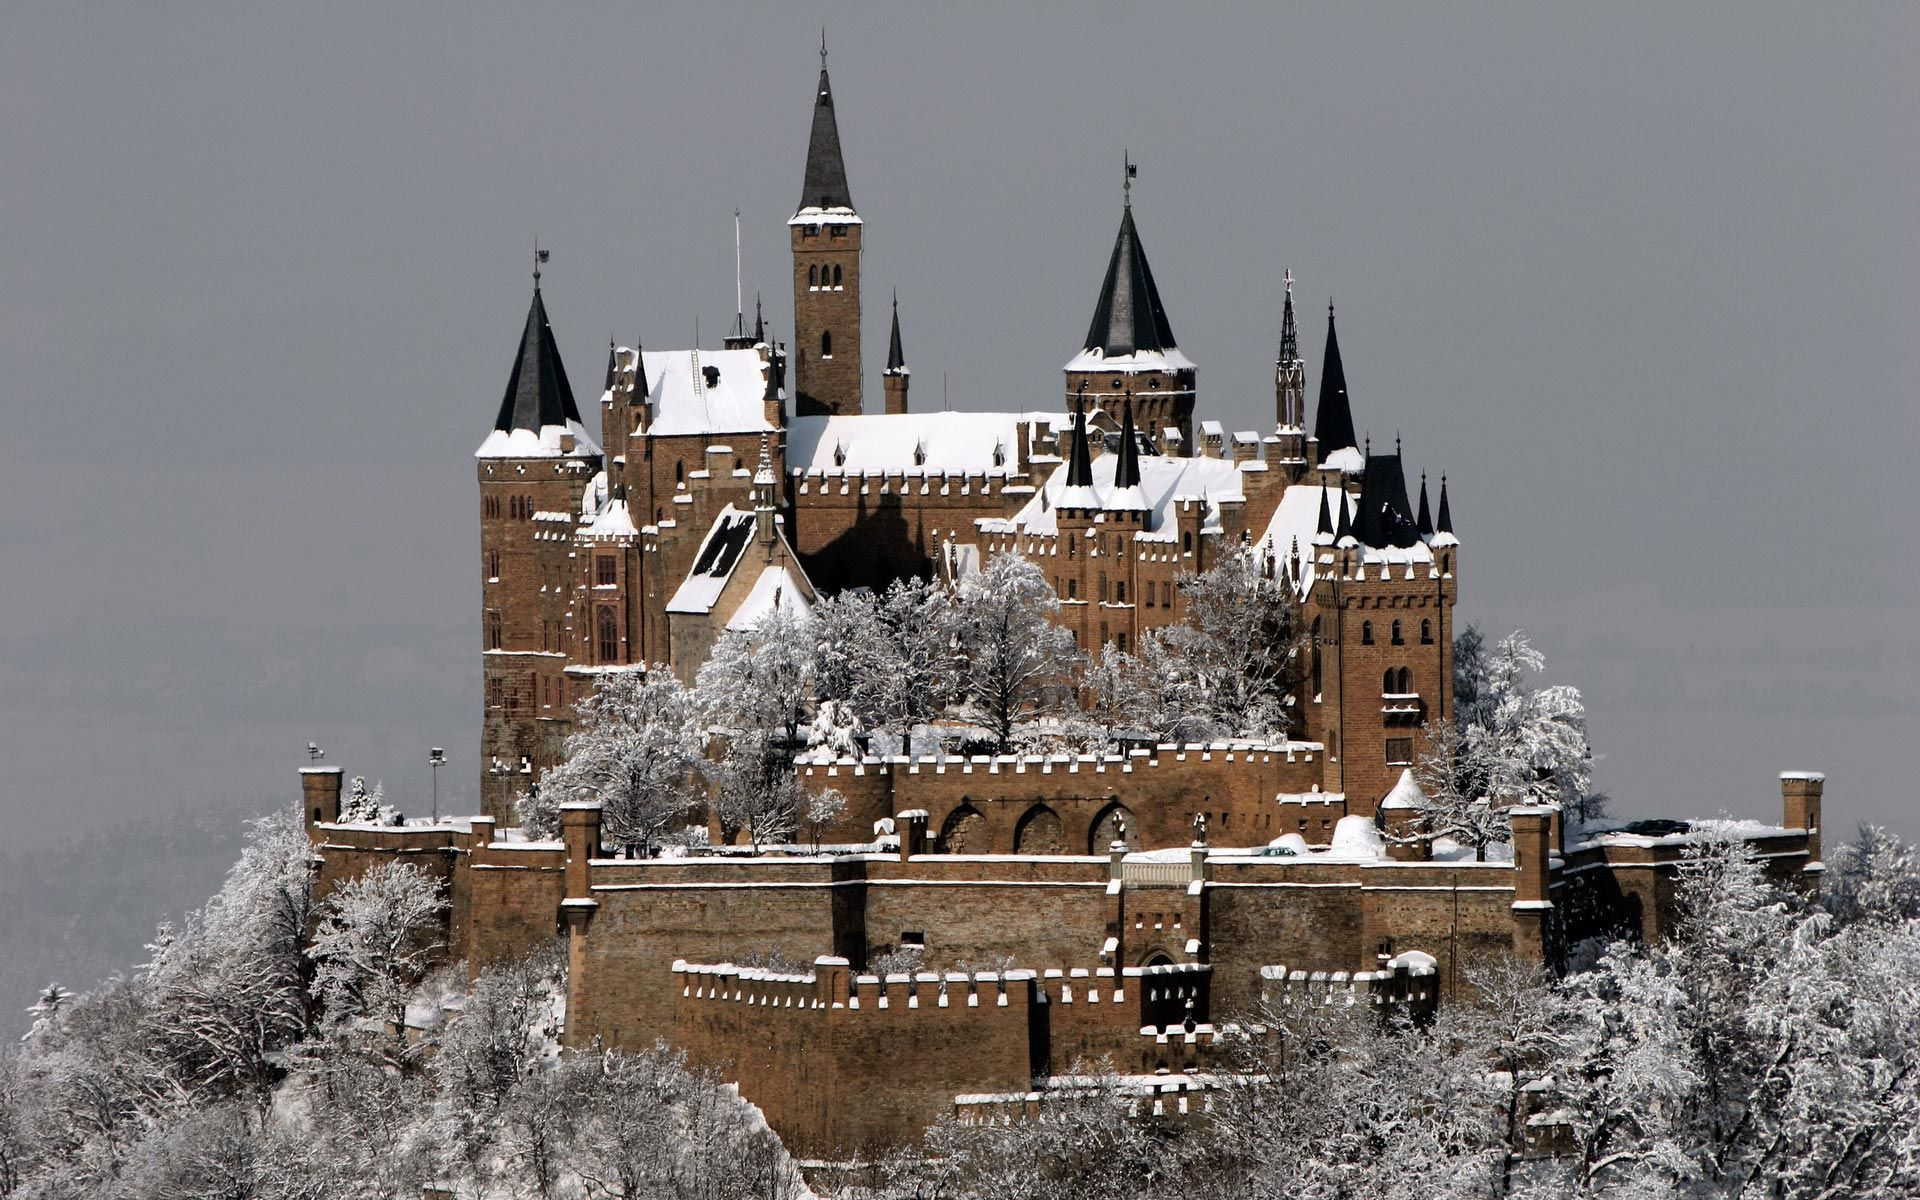 Hohenzollern Castle Stuttgart Germany Hohenzollern Castle Germany Castles Castle Pictures